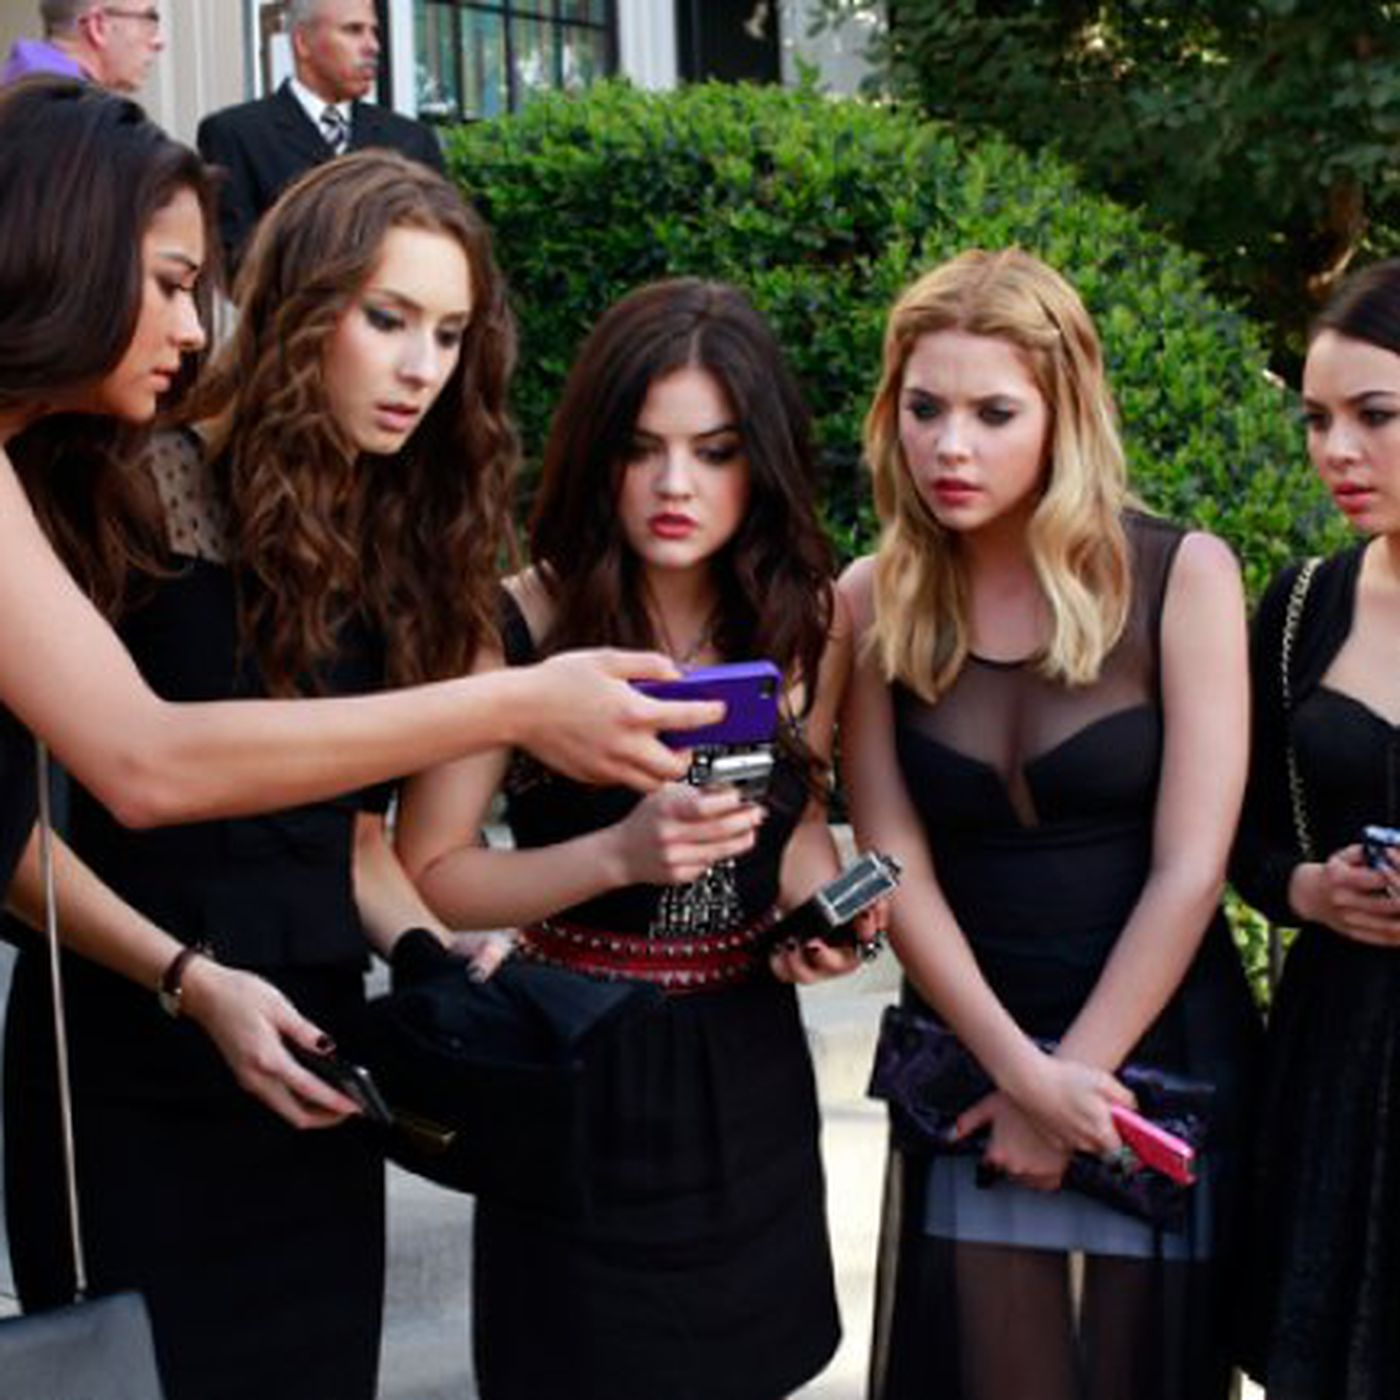 The Weird Wonderful Phones Of Pretty Little Liars The Verge